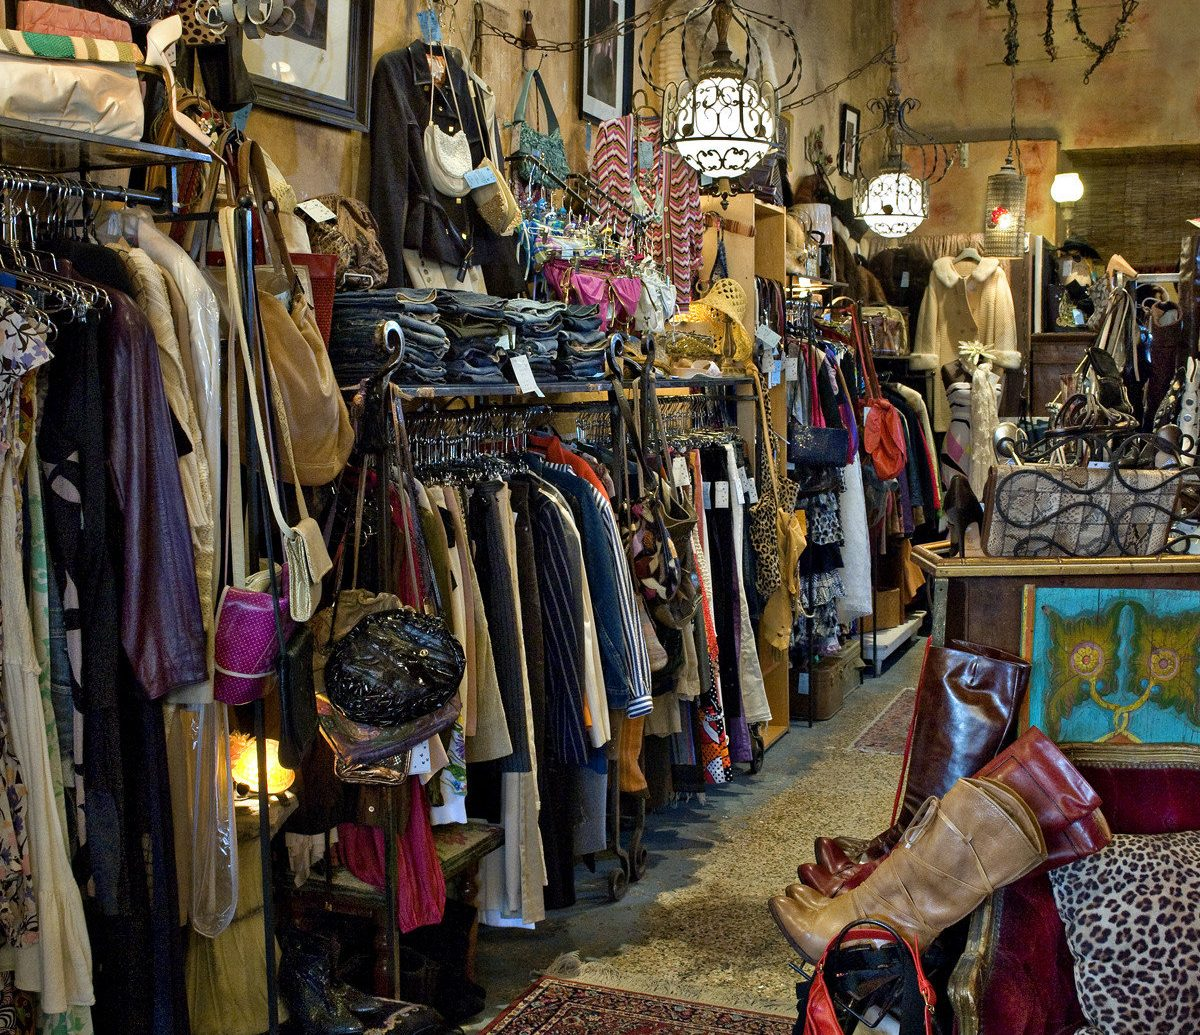 Trip Ideas indoor City market public space bazaar road human settlement street retail ancient history middle ages shopping altar colorful decorated clothes